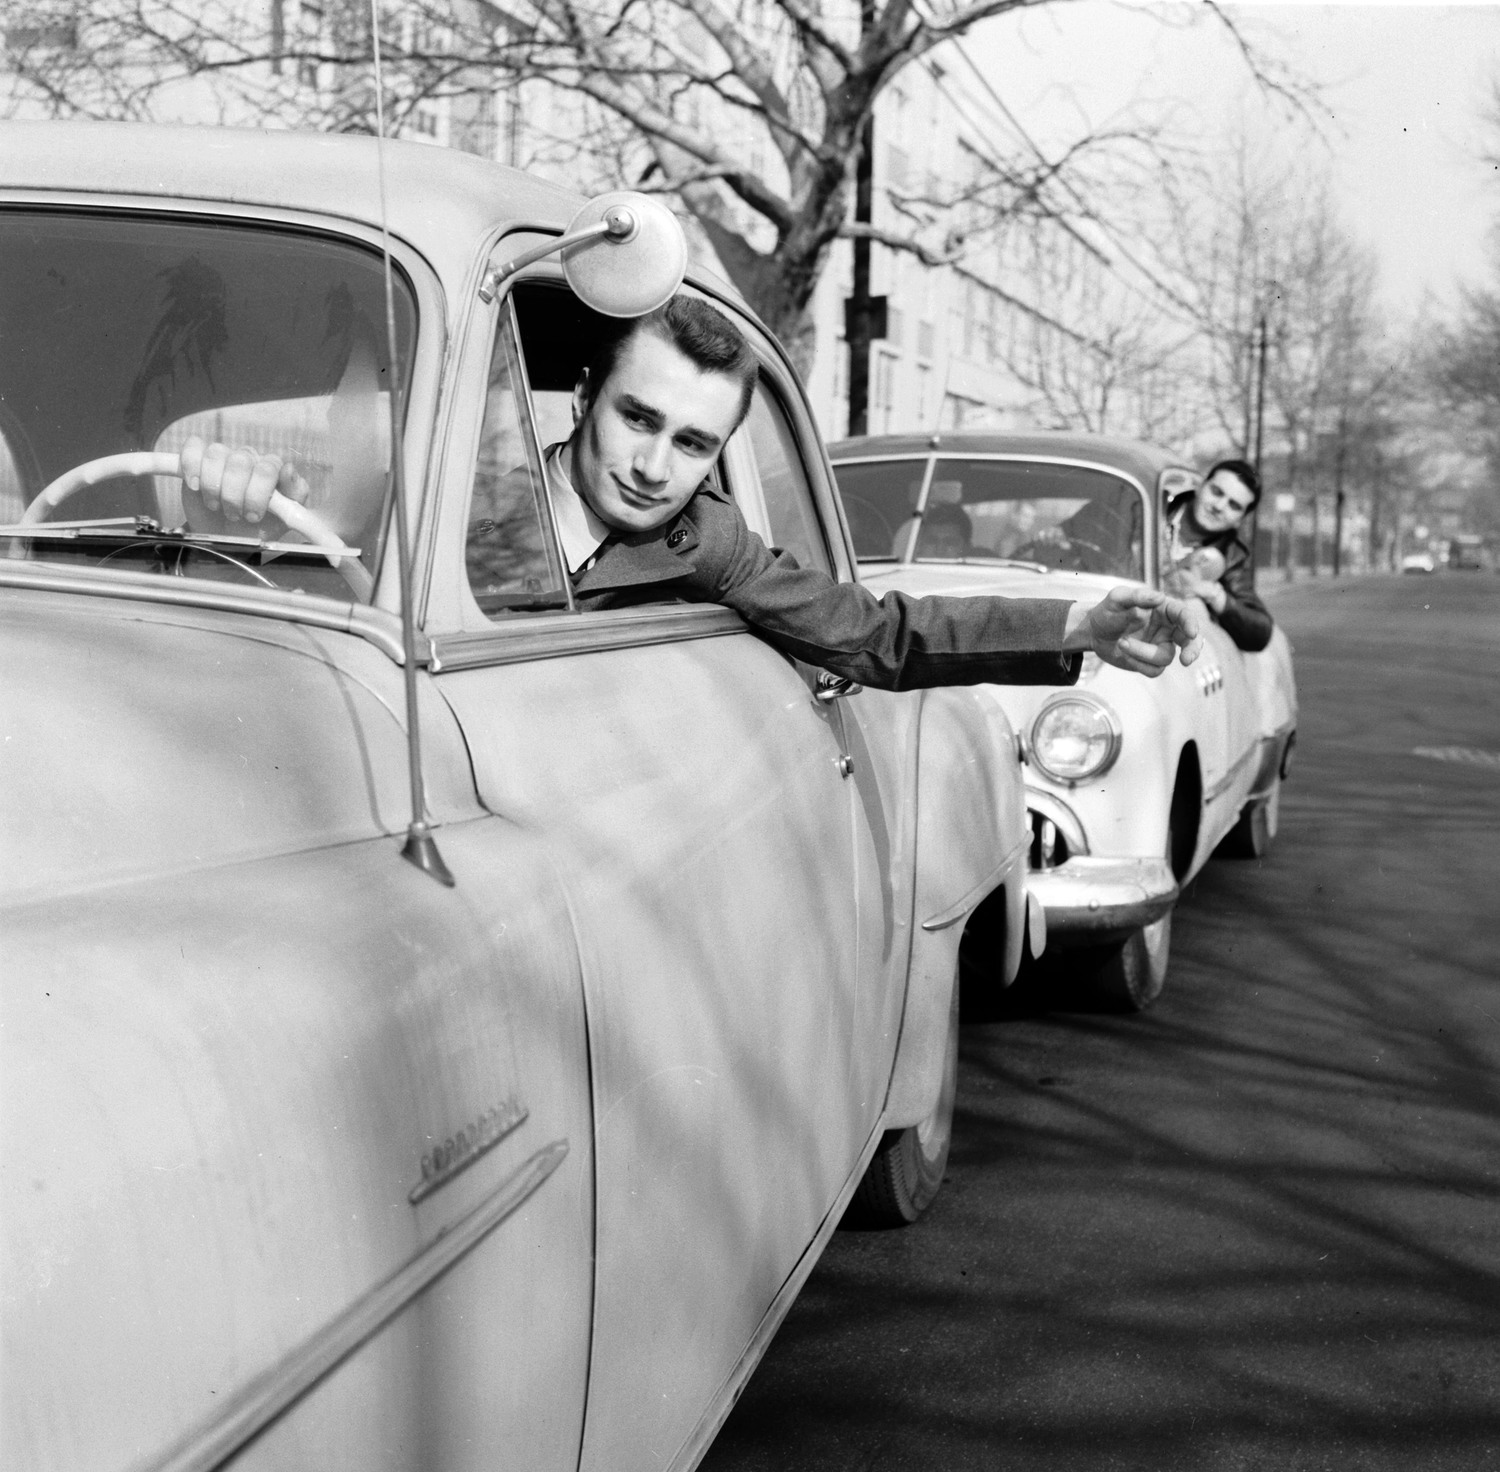 Students at Brooklyn School of Automotive Trades and members of the Automotive Custom Crafters Club are pledged to provide honest service to the motoring public without charge. Here they give a driver a push start, 1956.